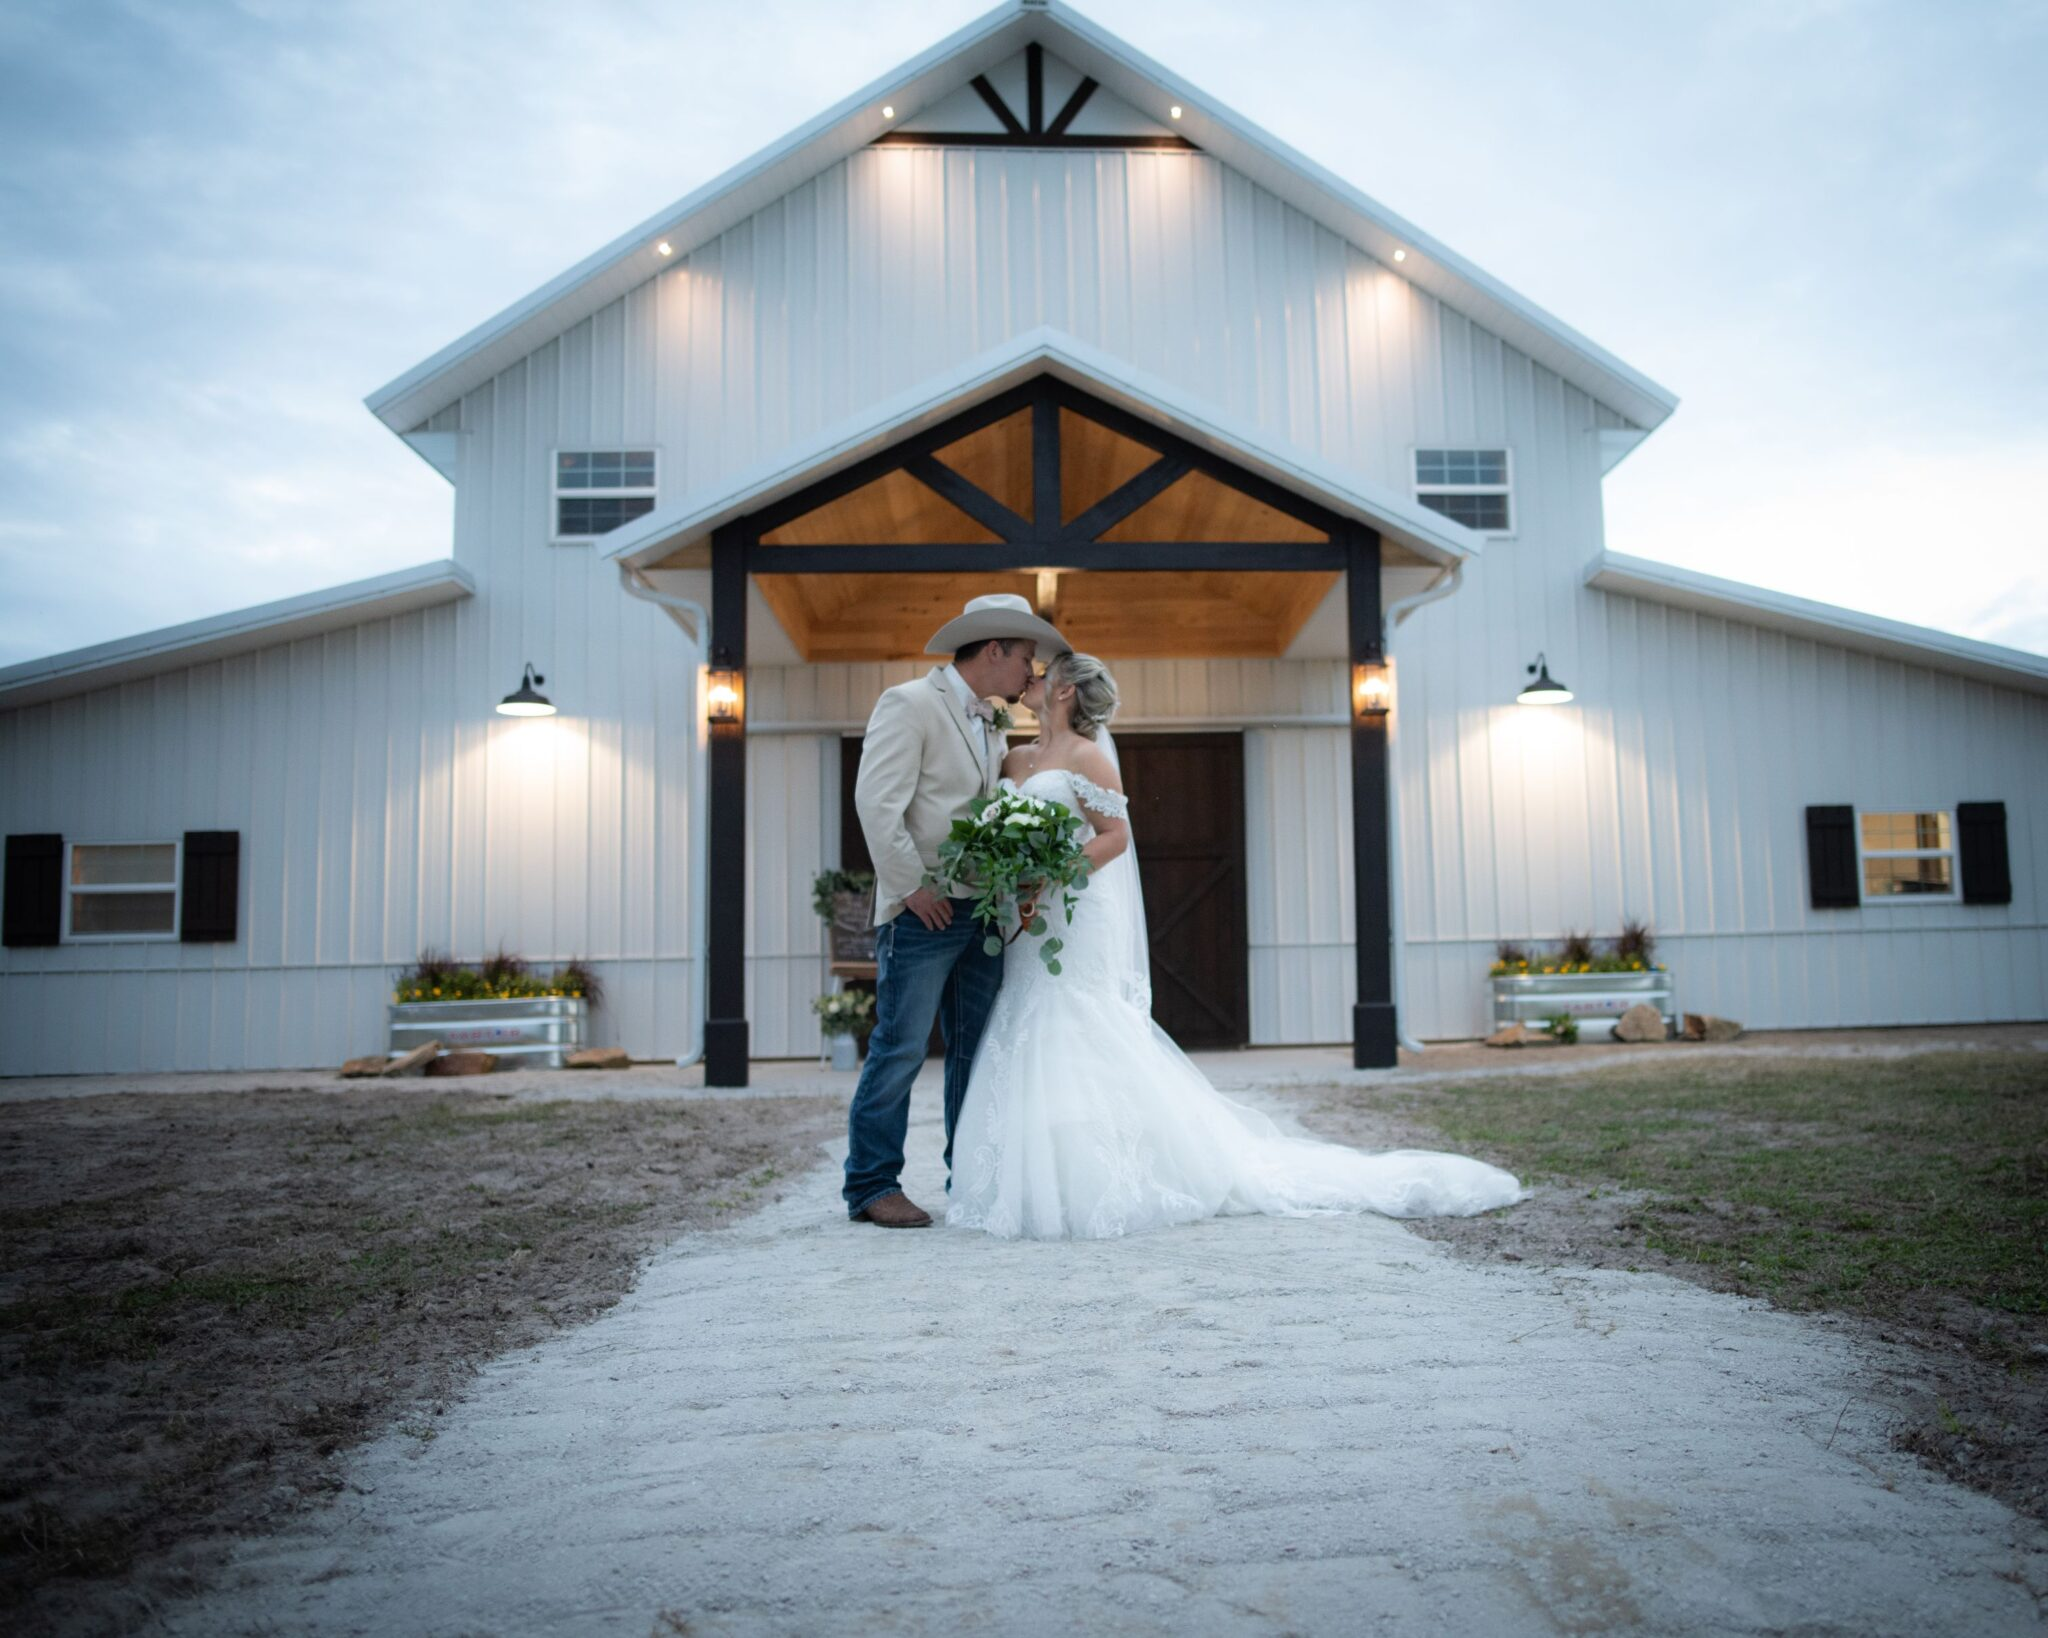 bride and groom kissing in front of large white barn